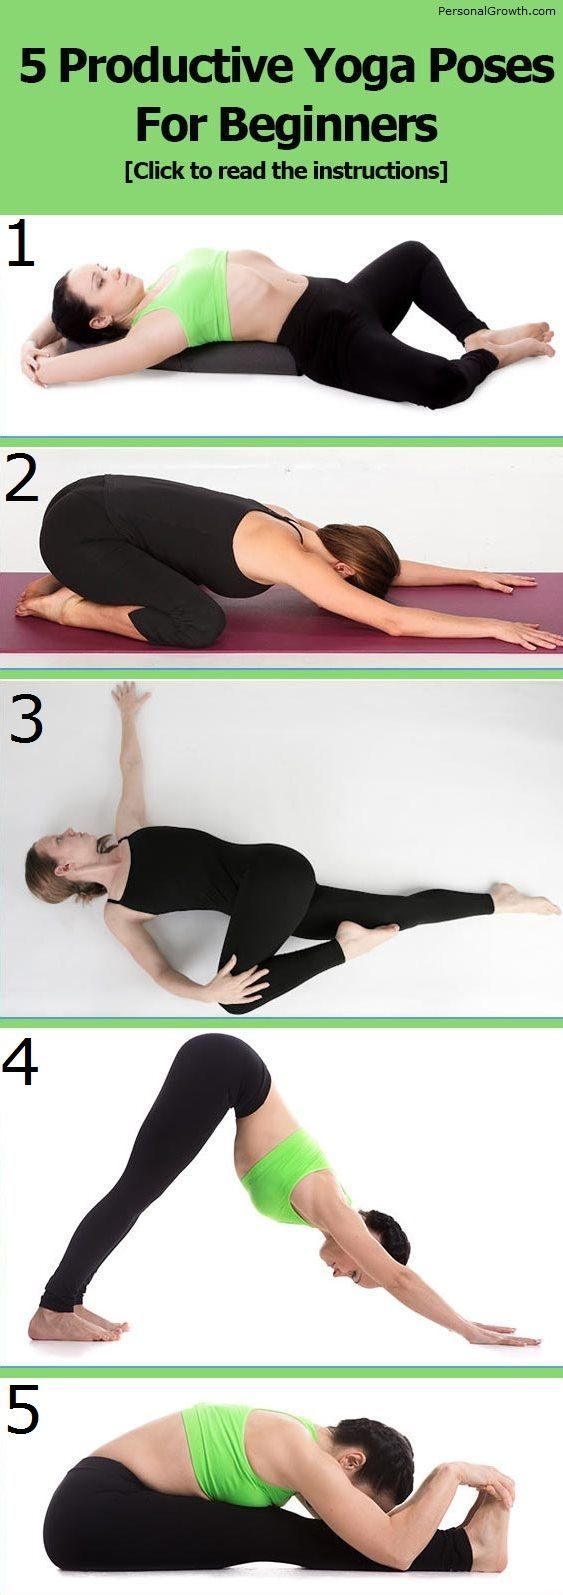 Excerise: 5 Productive Yoga Poses For Beginners